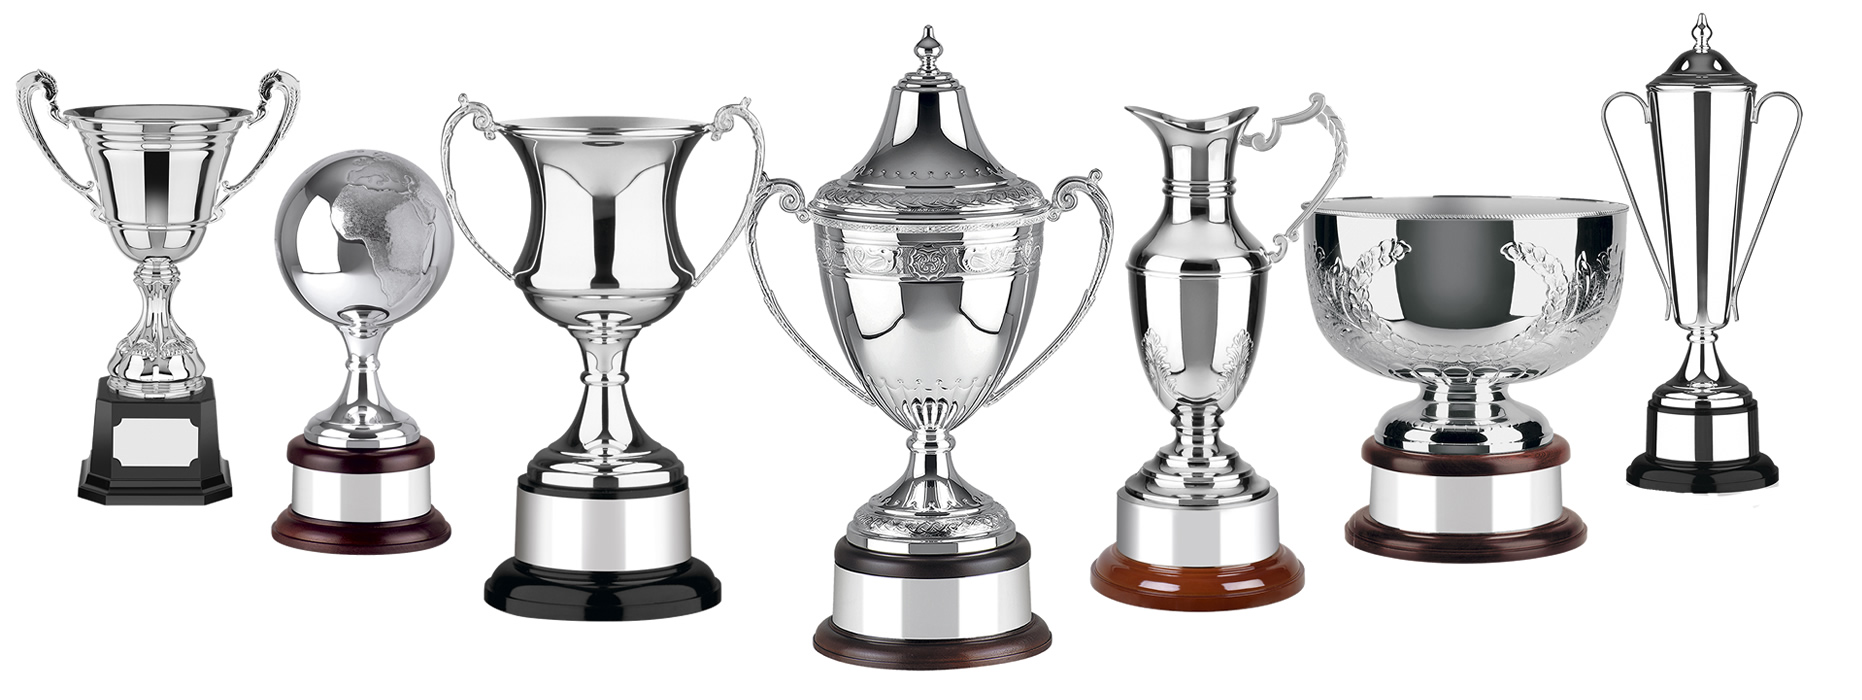 All-Trophies